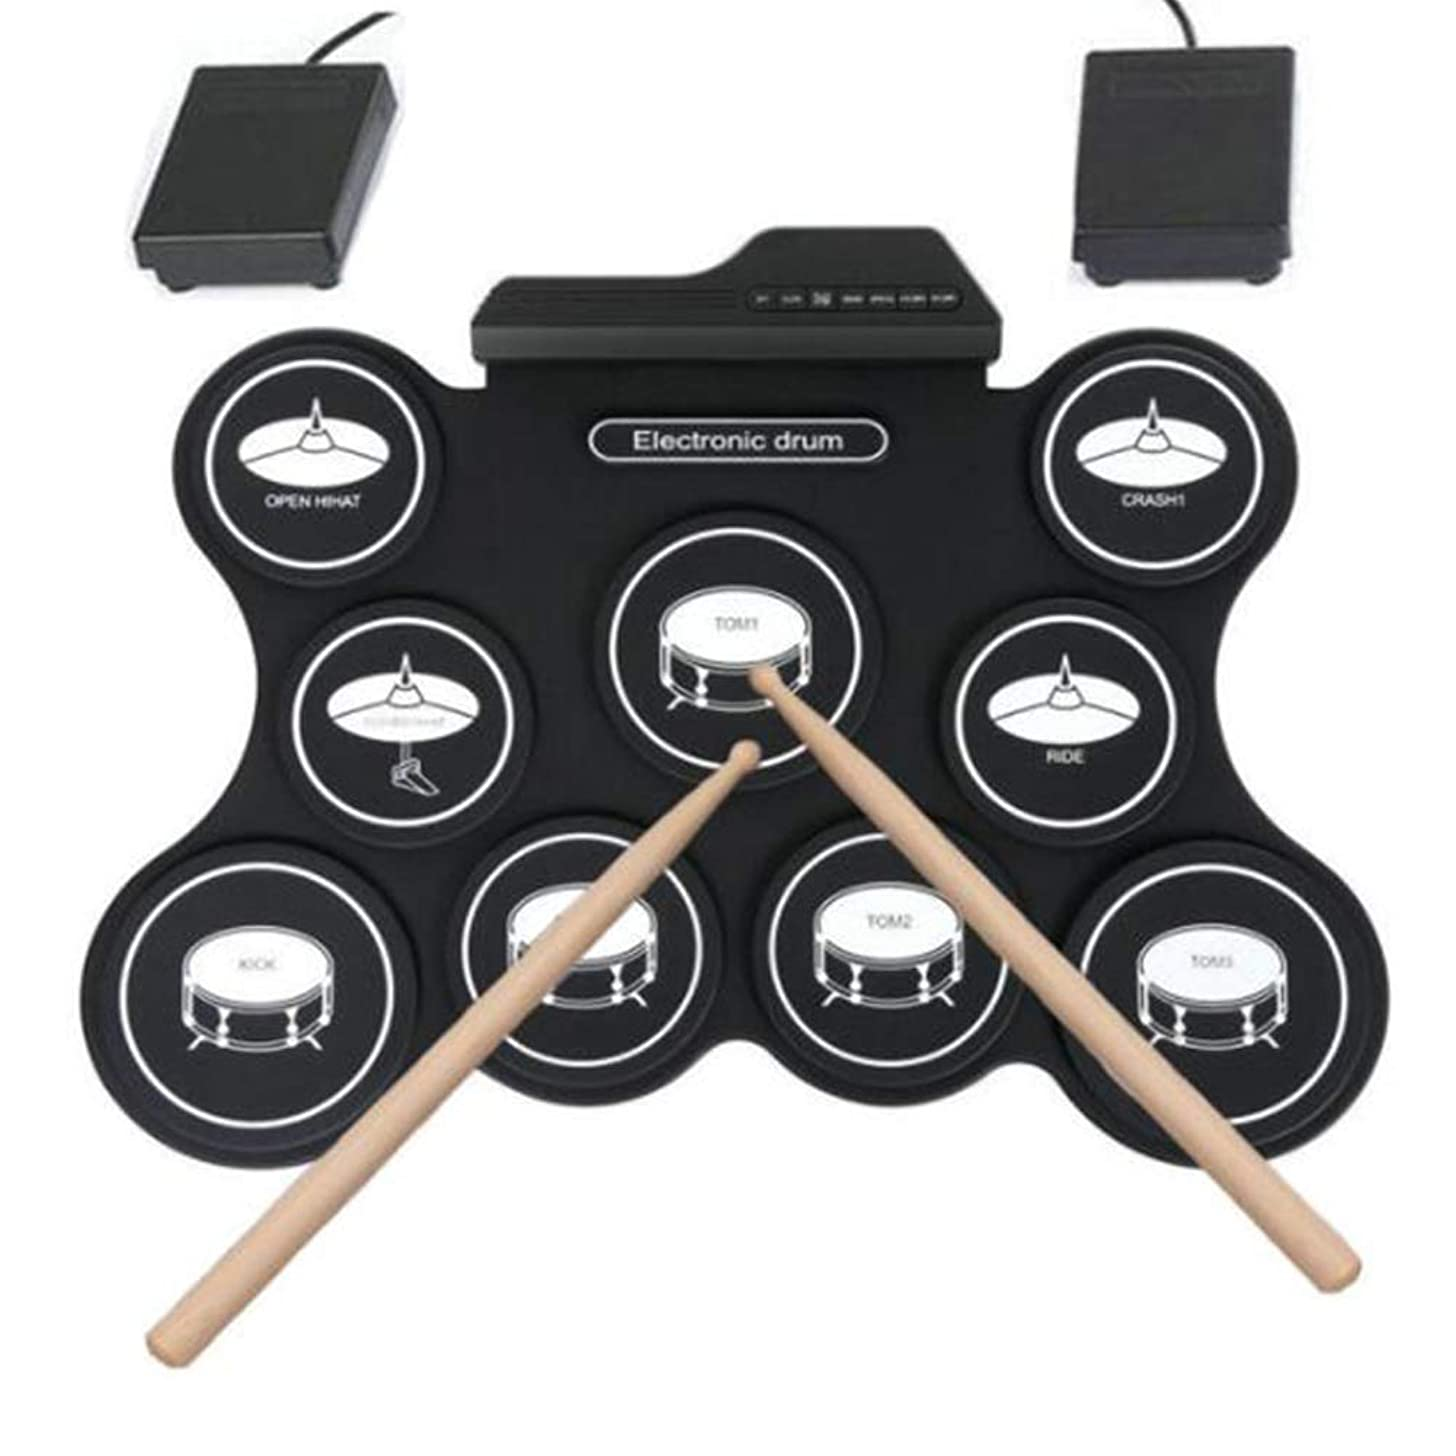 PJDDP Electric Drum Drum,Portable Roll Up Electronic Digital Drum Kit with MP3 Input,Built-in 5 Drum Set Tones and 8 Demo Songs,Without Speaker for Kids Or Beginner